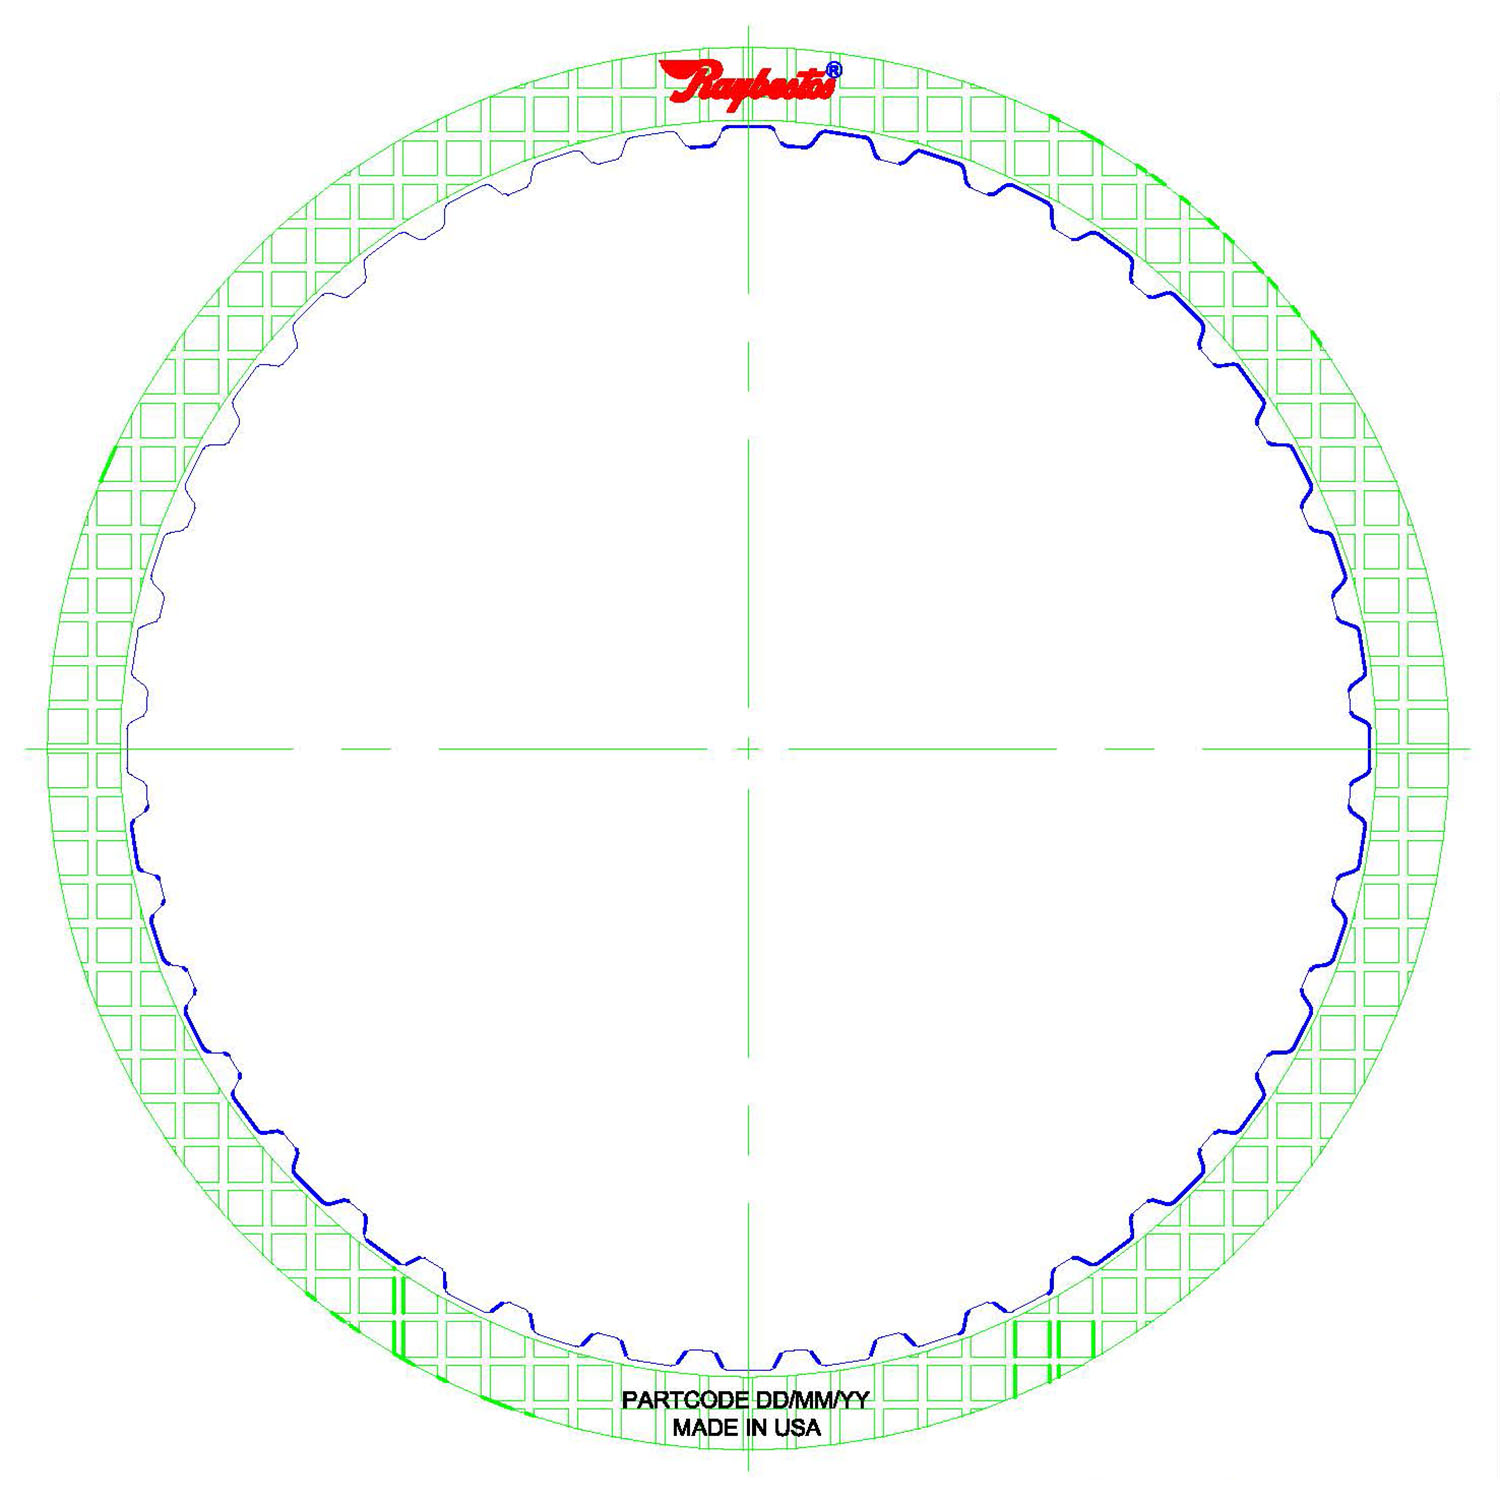 01J (CVT), 0AW (CVT) High Energy Friction Clutch Plate